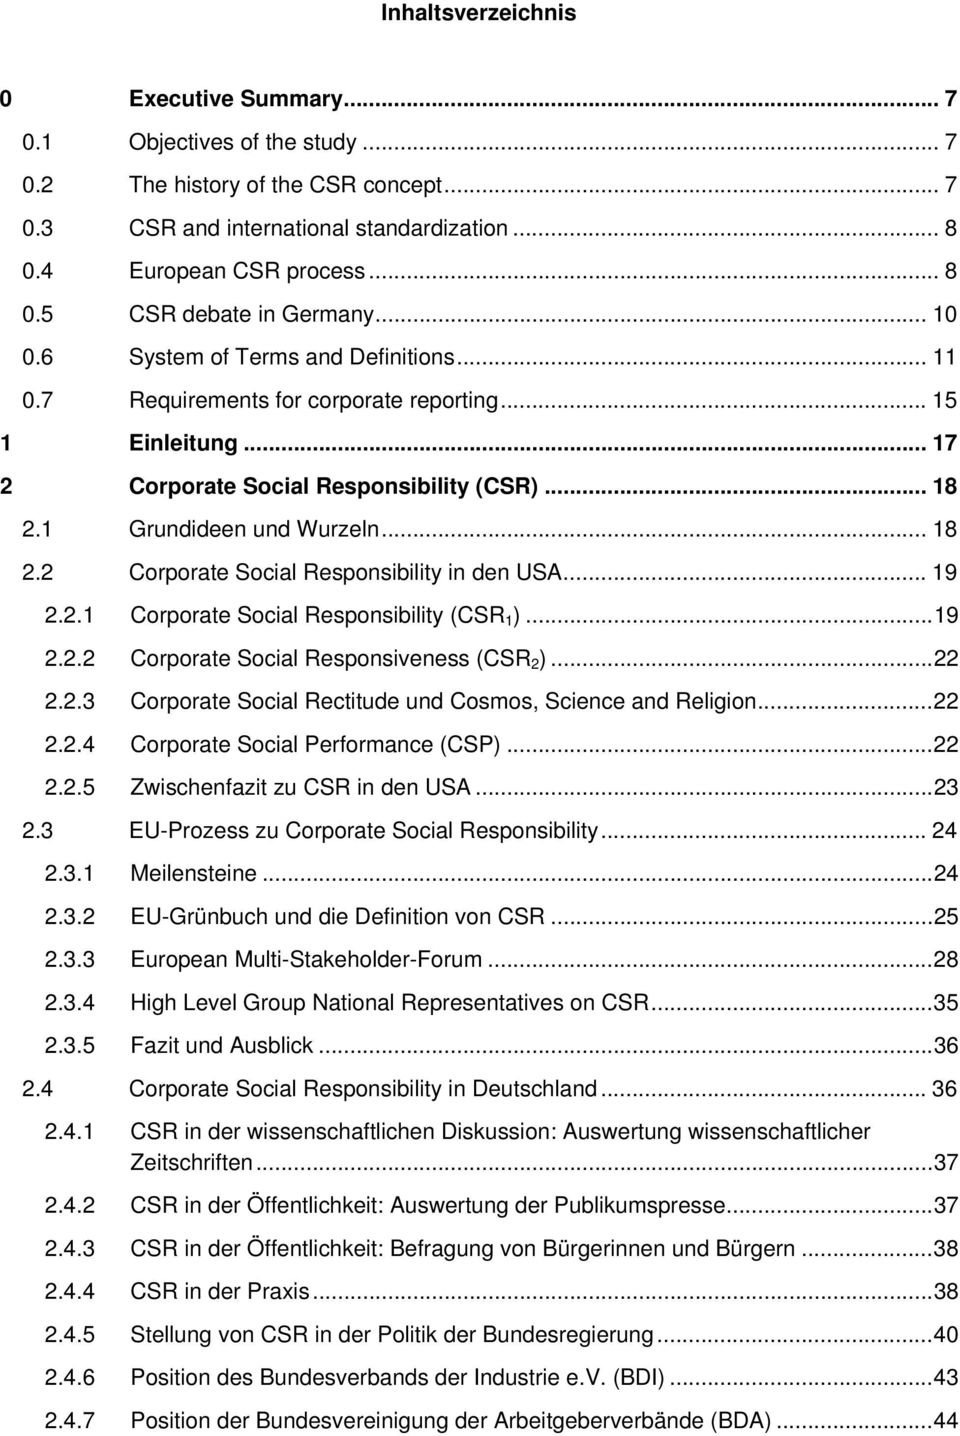 1 Grundideen und Wurzeln... 18 2.2 Corporate Social Responsibility in den USA... 19 2.2.1 Corporate Social Responsibility (CSR 1 )...19 2.2.2 Corporate Social Responsiveness (CSR 2 )...22 2.2.3 Corporate Social Rectitude und Cosmos, Science and Religion.